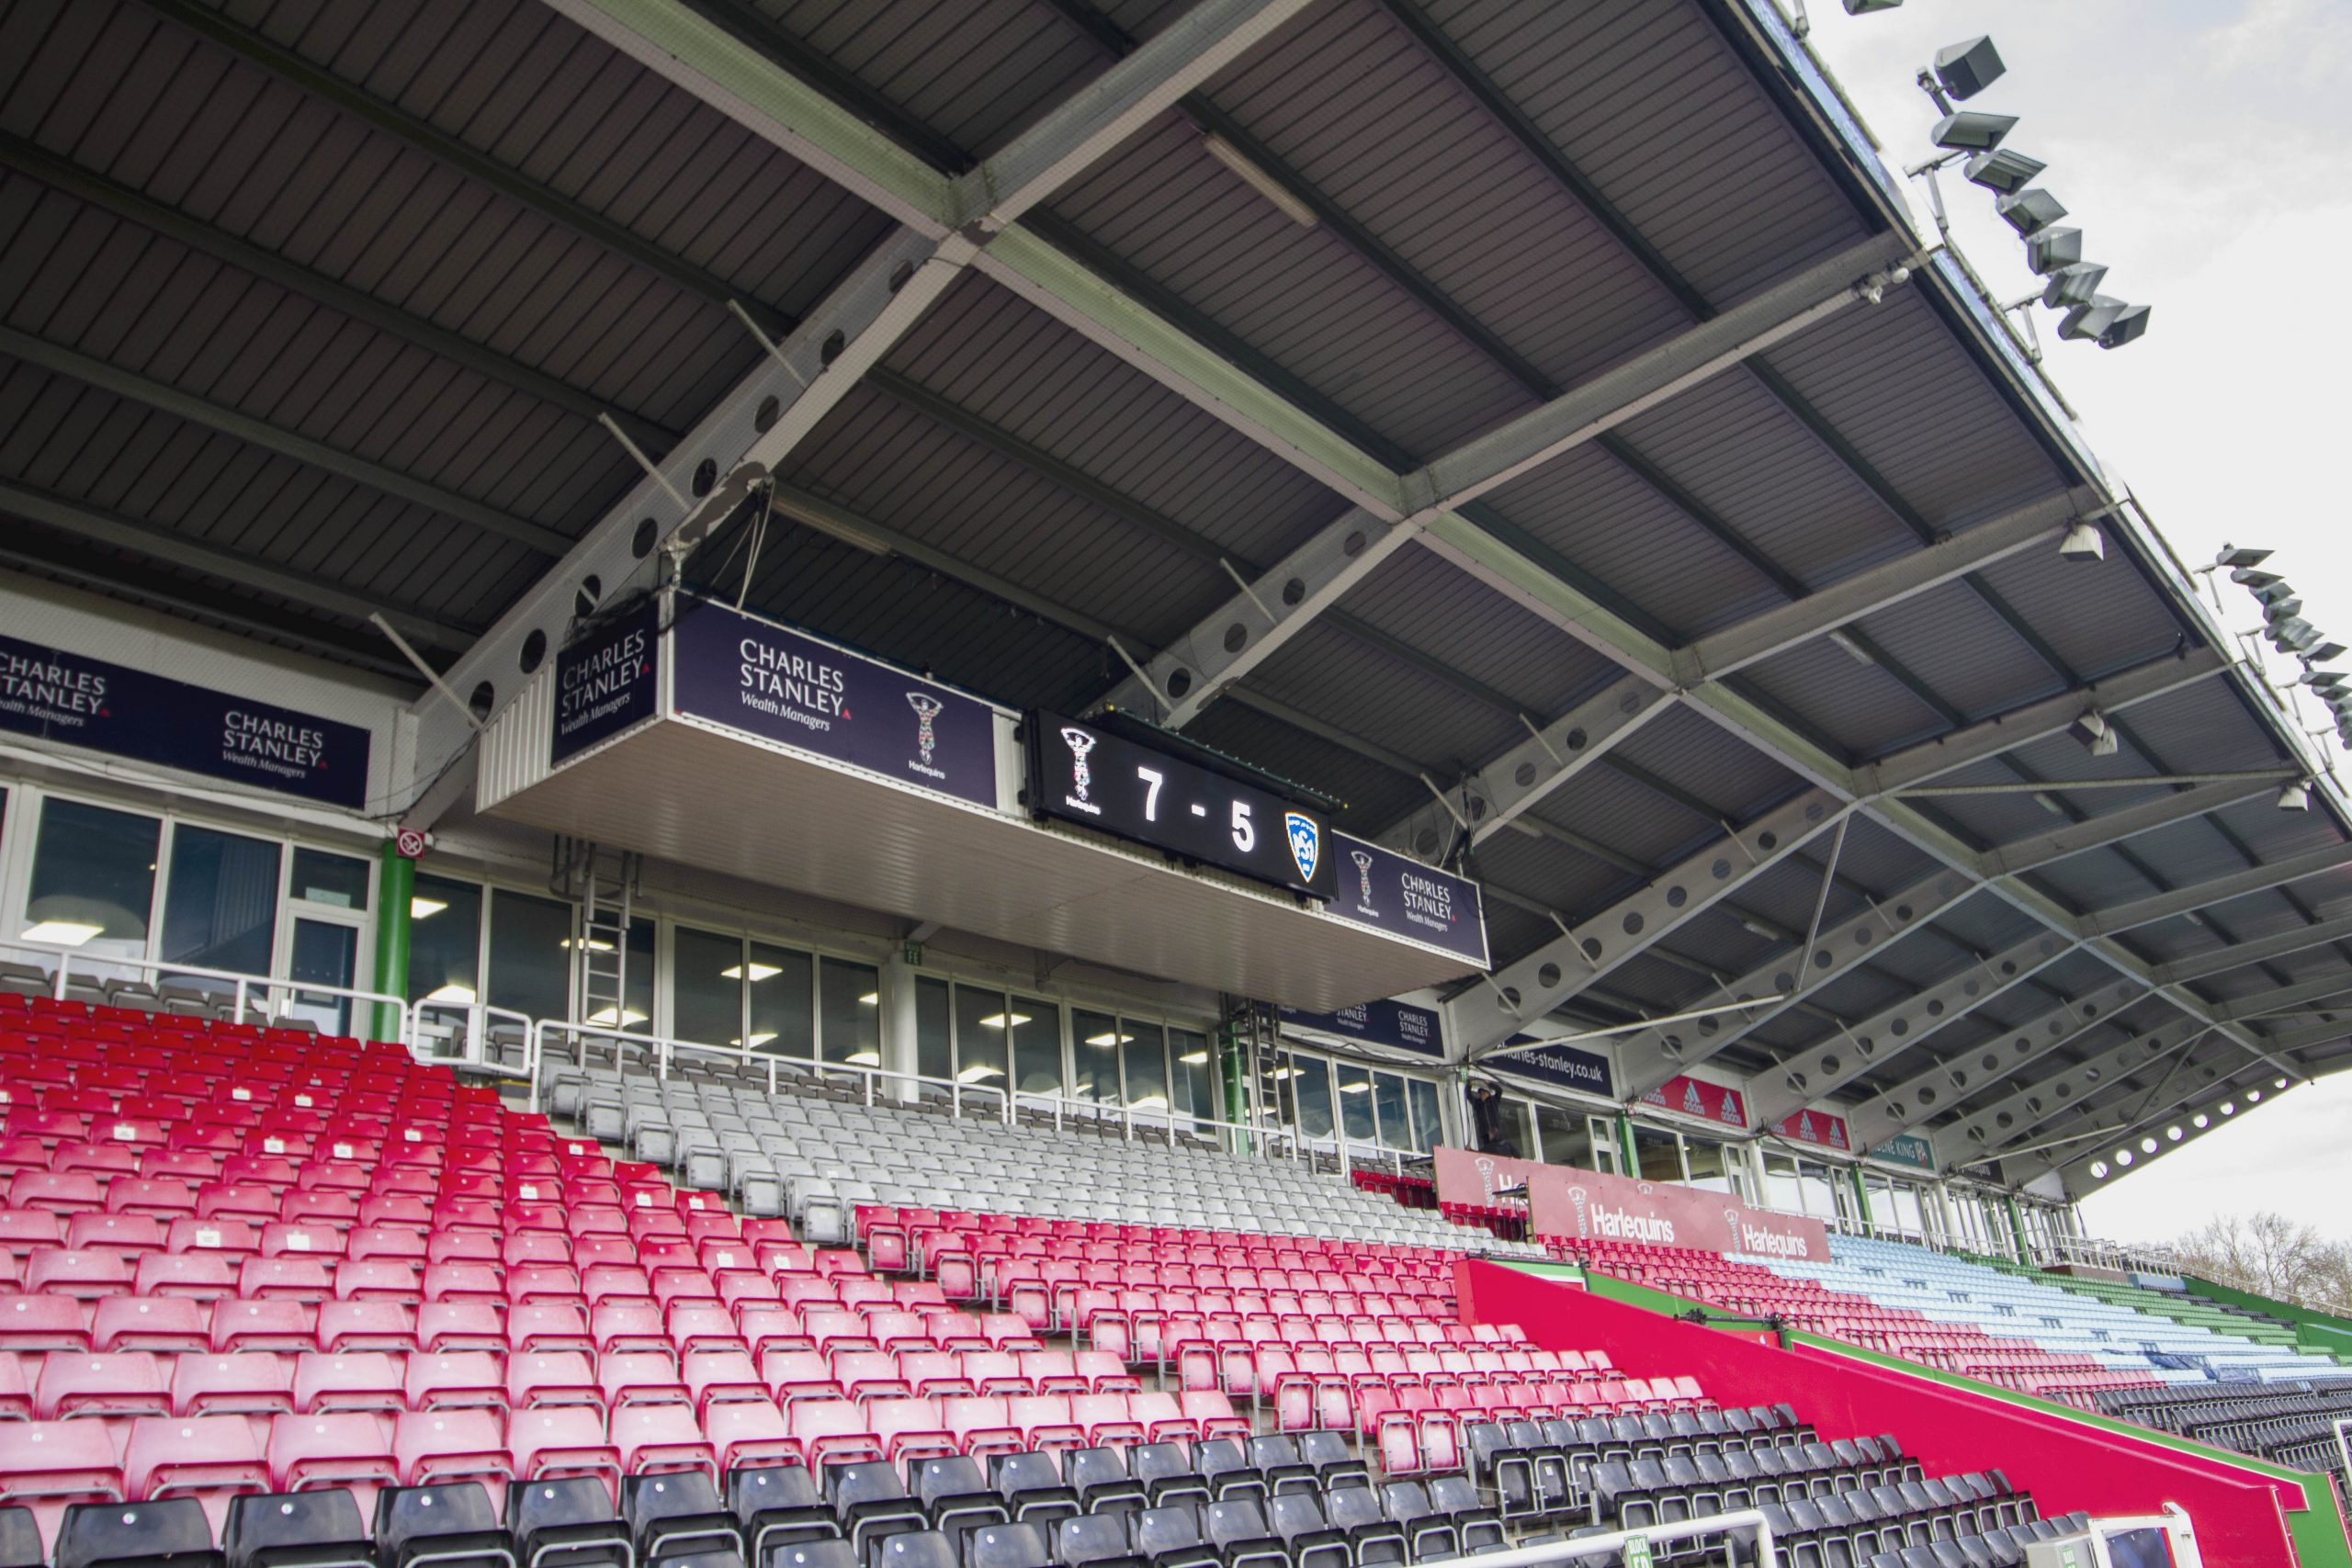 Harlequins-Rugby-Screen-Concept-Group-6